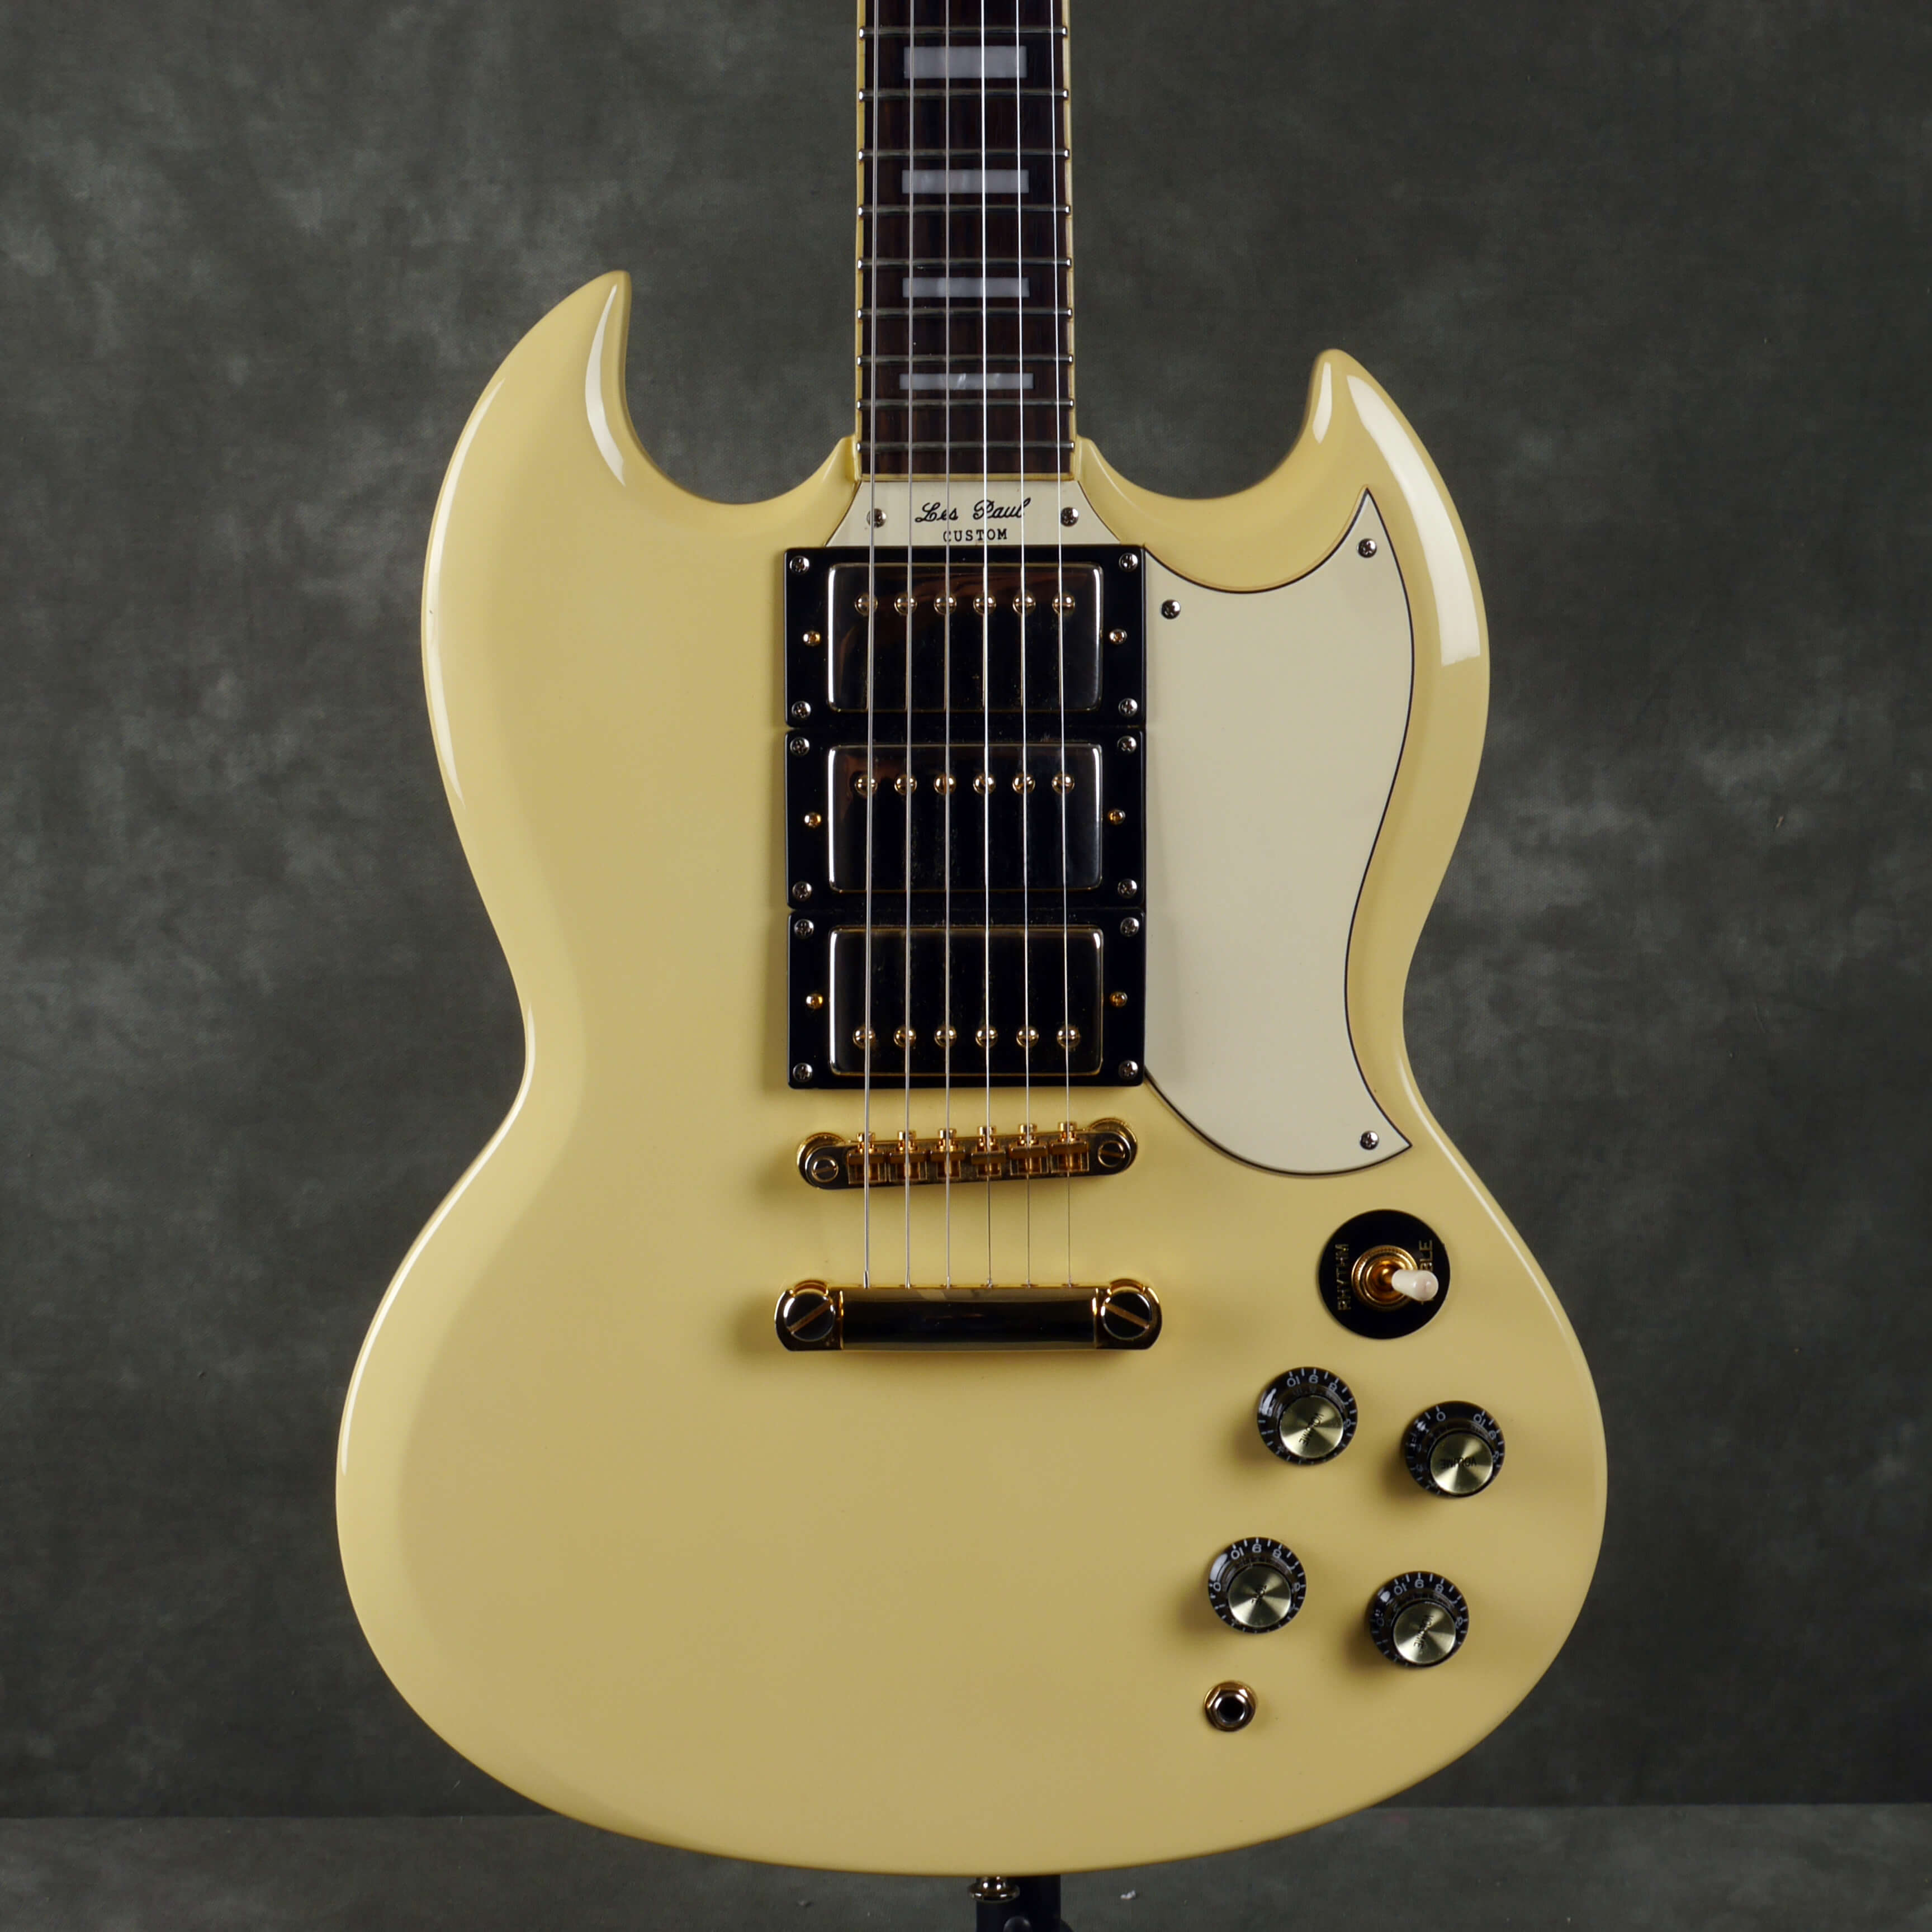 Epiphone G-400 Custom 3-Pickup Electric Guitar - Antique Ivory - 2nd Hand